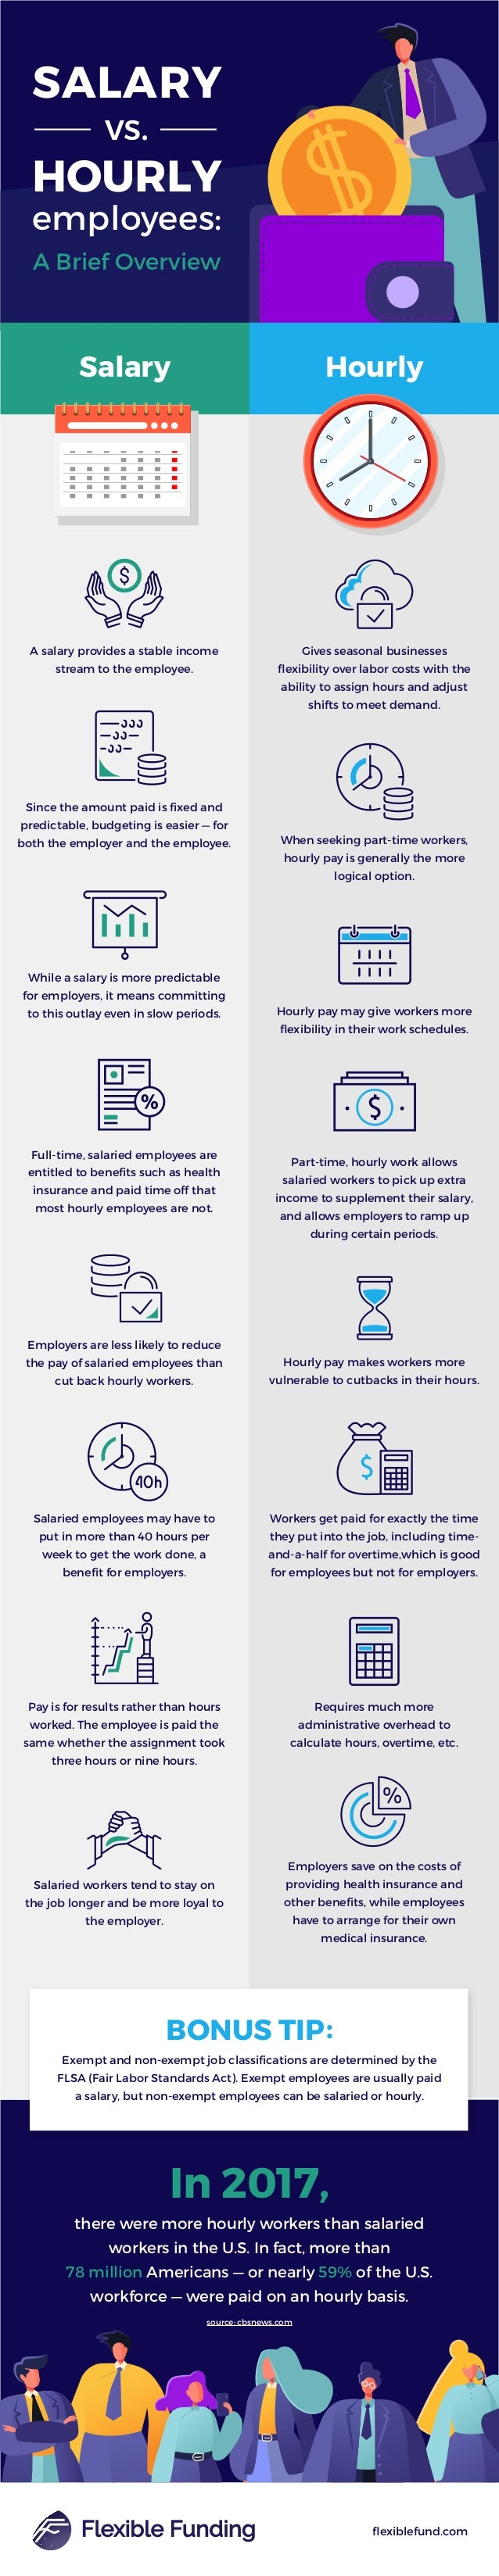 SALARY vs. HOURLY employees: A Brief Overview A salary provides a stable income stream to the employee. Since the amount p...